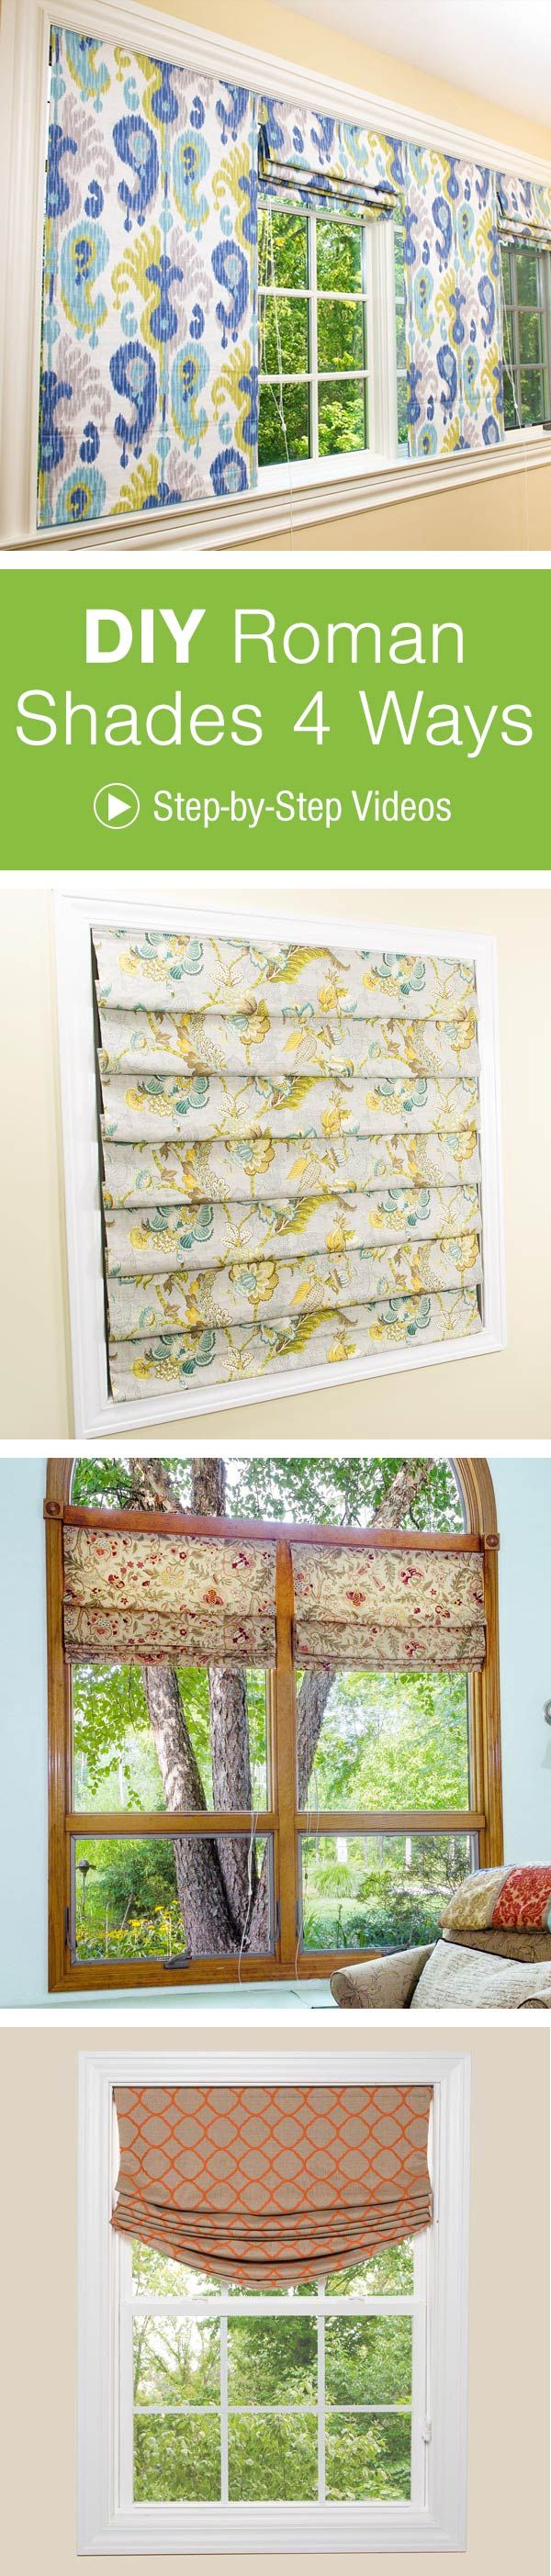 Ro Ro Roman Shade Curtain Patterns - Create custom roman shades for every room in your home with 4 great tutorials